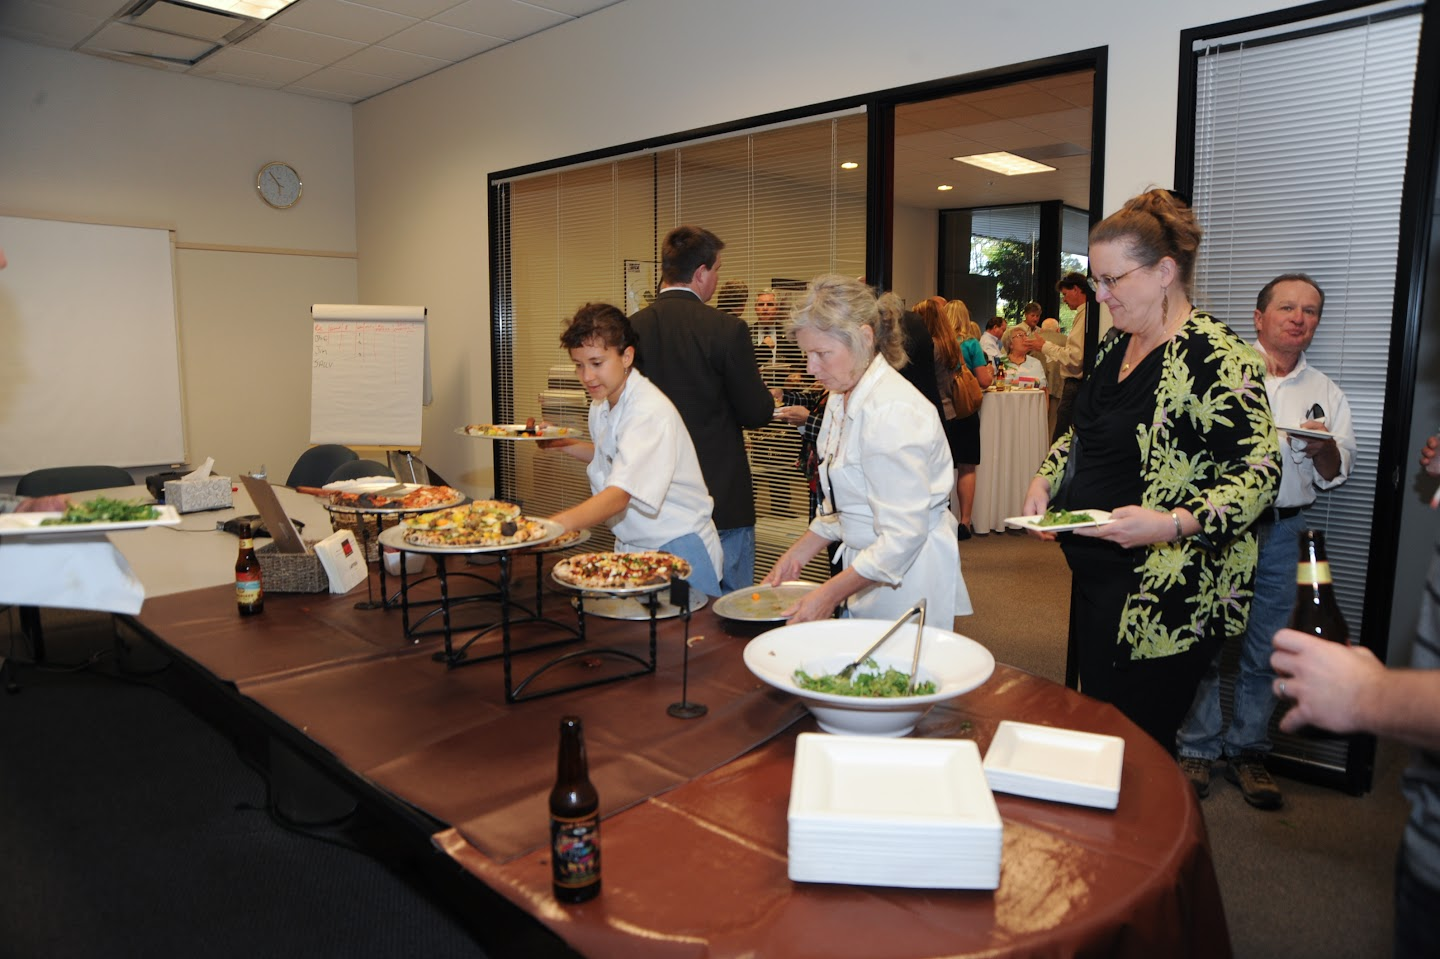 Rotary Means Business at Discovery Office with Rosso Pizzeria - DSC_6790.jpg